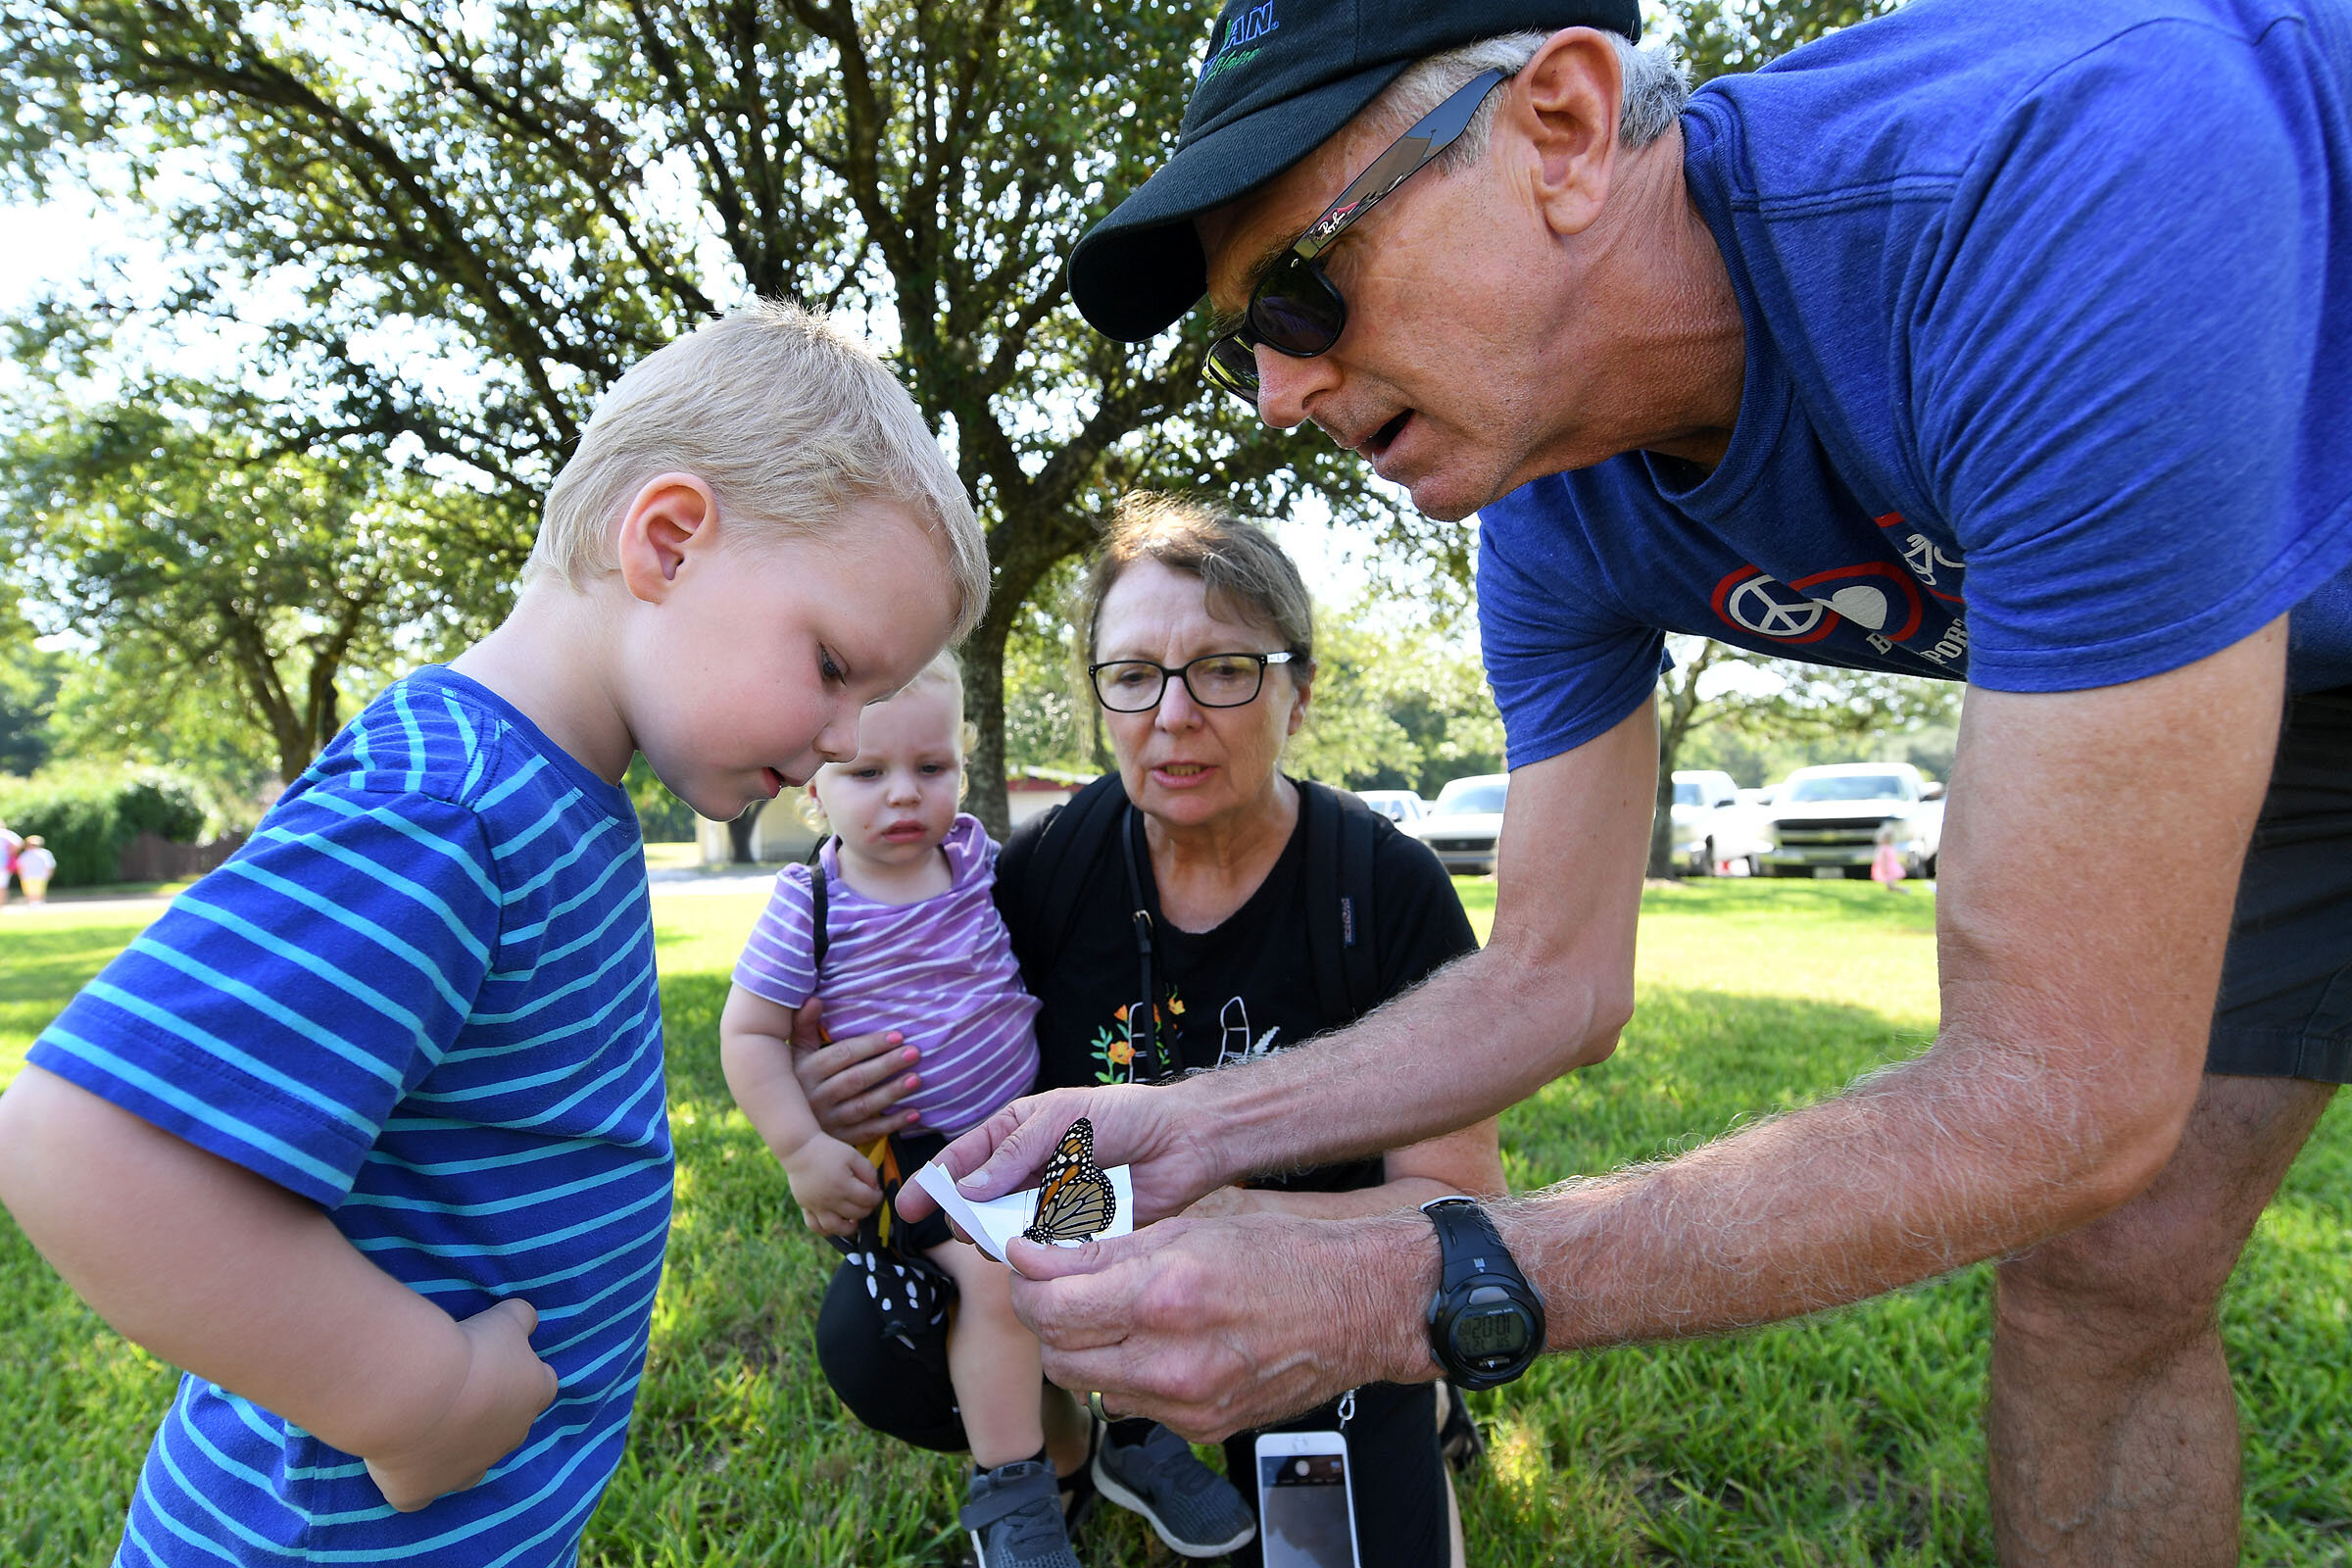 Ruthie Gray and Gary Kunkel release a monarch butterfly with their grandsons, Otis Gray, 2, left, and Walter Gray, 16 months, during the Brazos Valley Museum of Natural History's 7th annual Wish Upon a Butterfly event on Saturday, July 27, 2019, in Bryan, Texas. (Laura McKenzie/The Eagle)